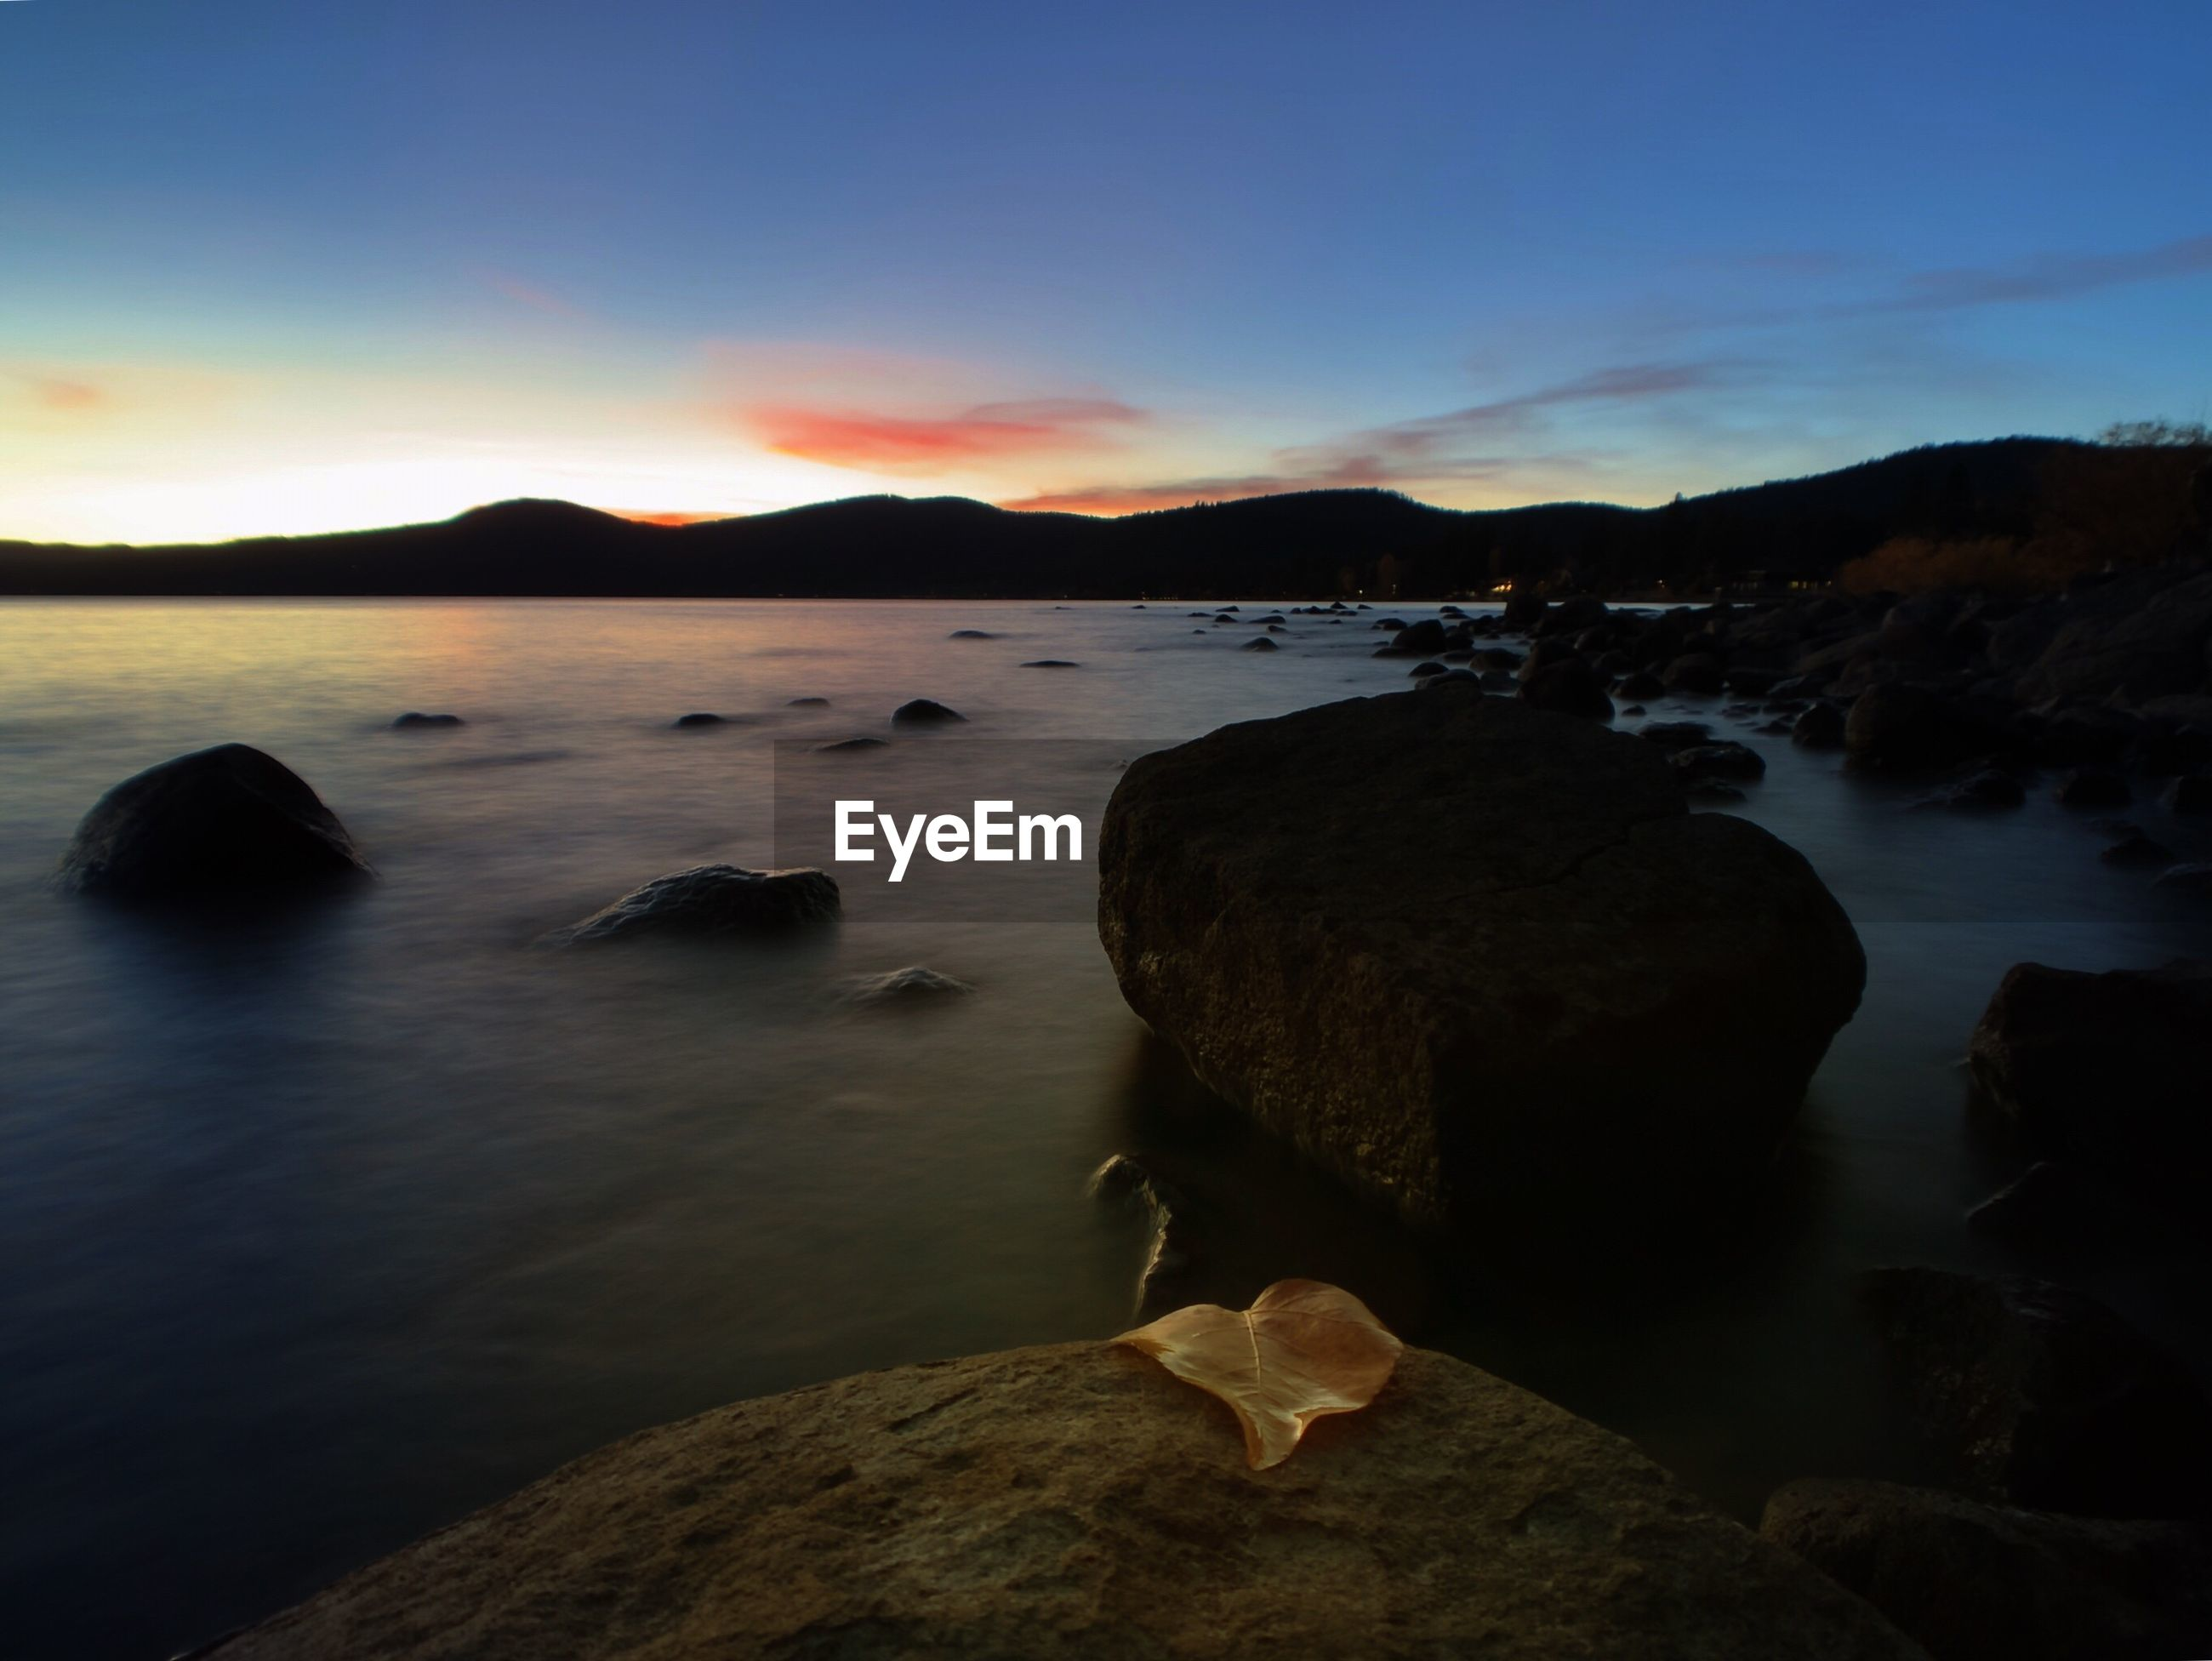 SCENIC VIEW OF ROCKS ON BEACH AGAINST SKY DURING SUNSET